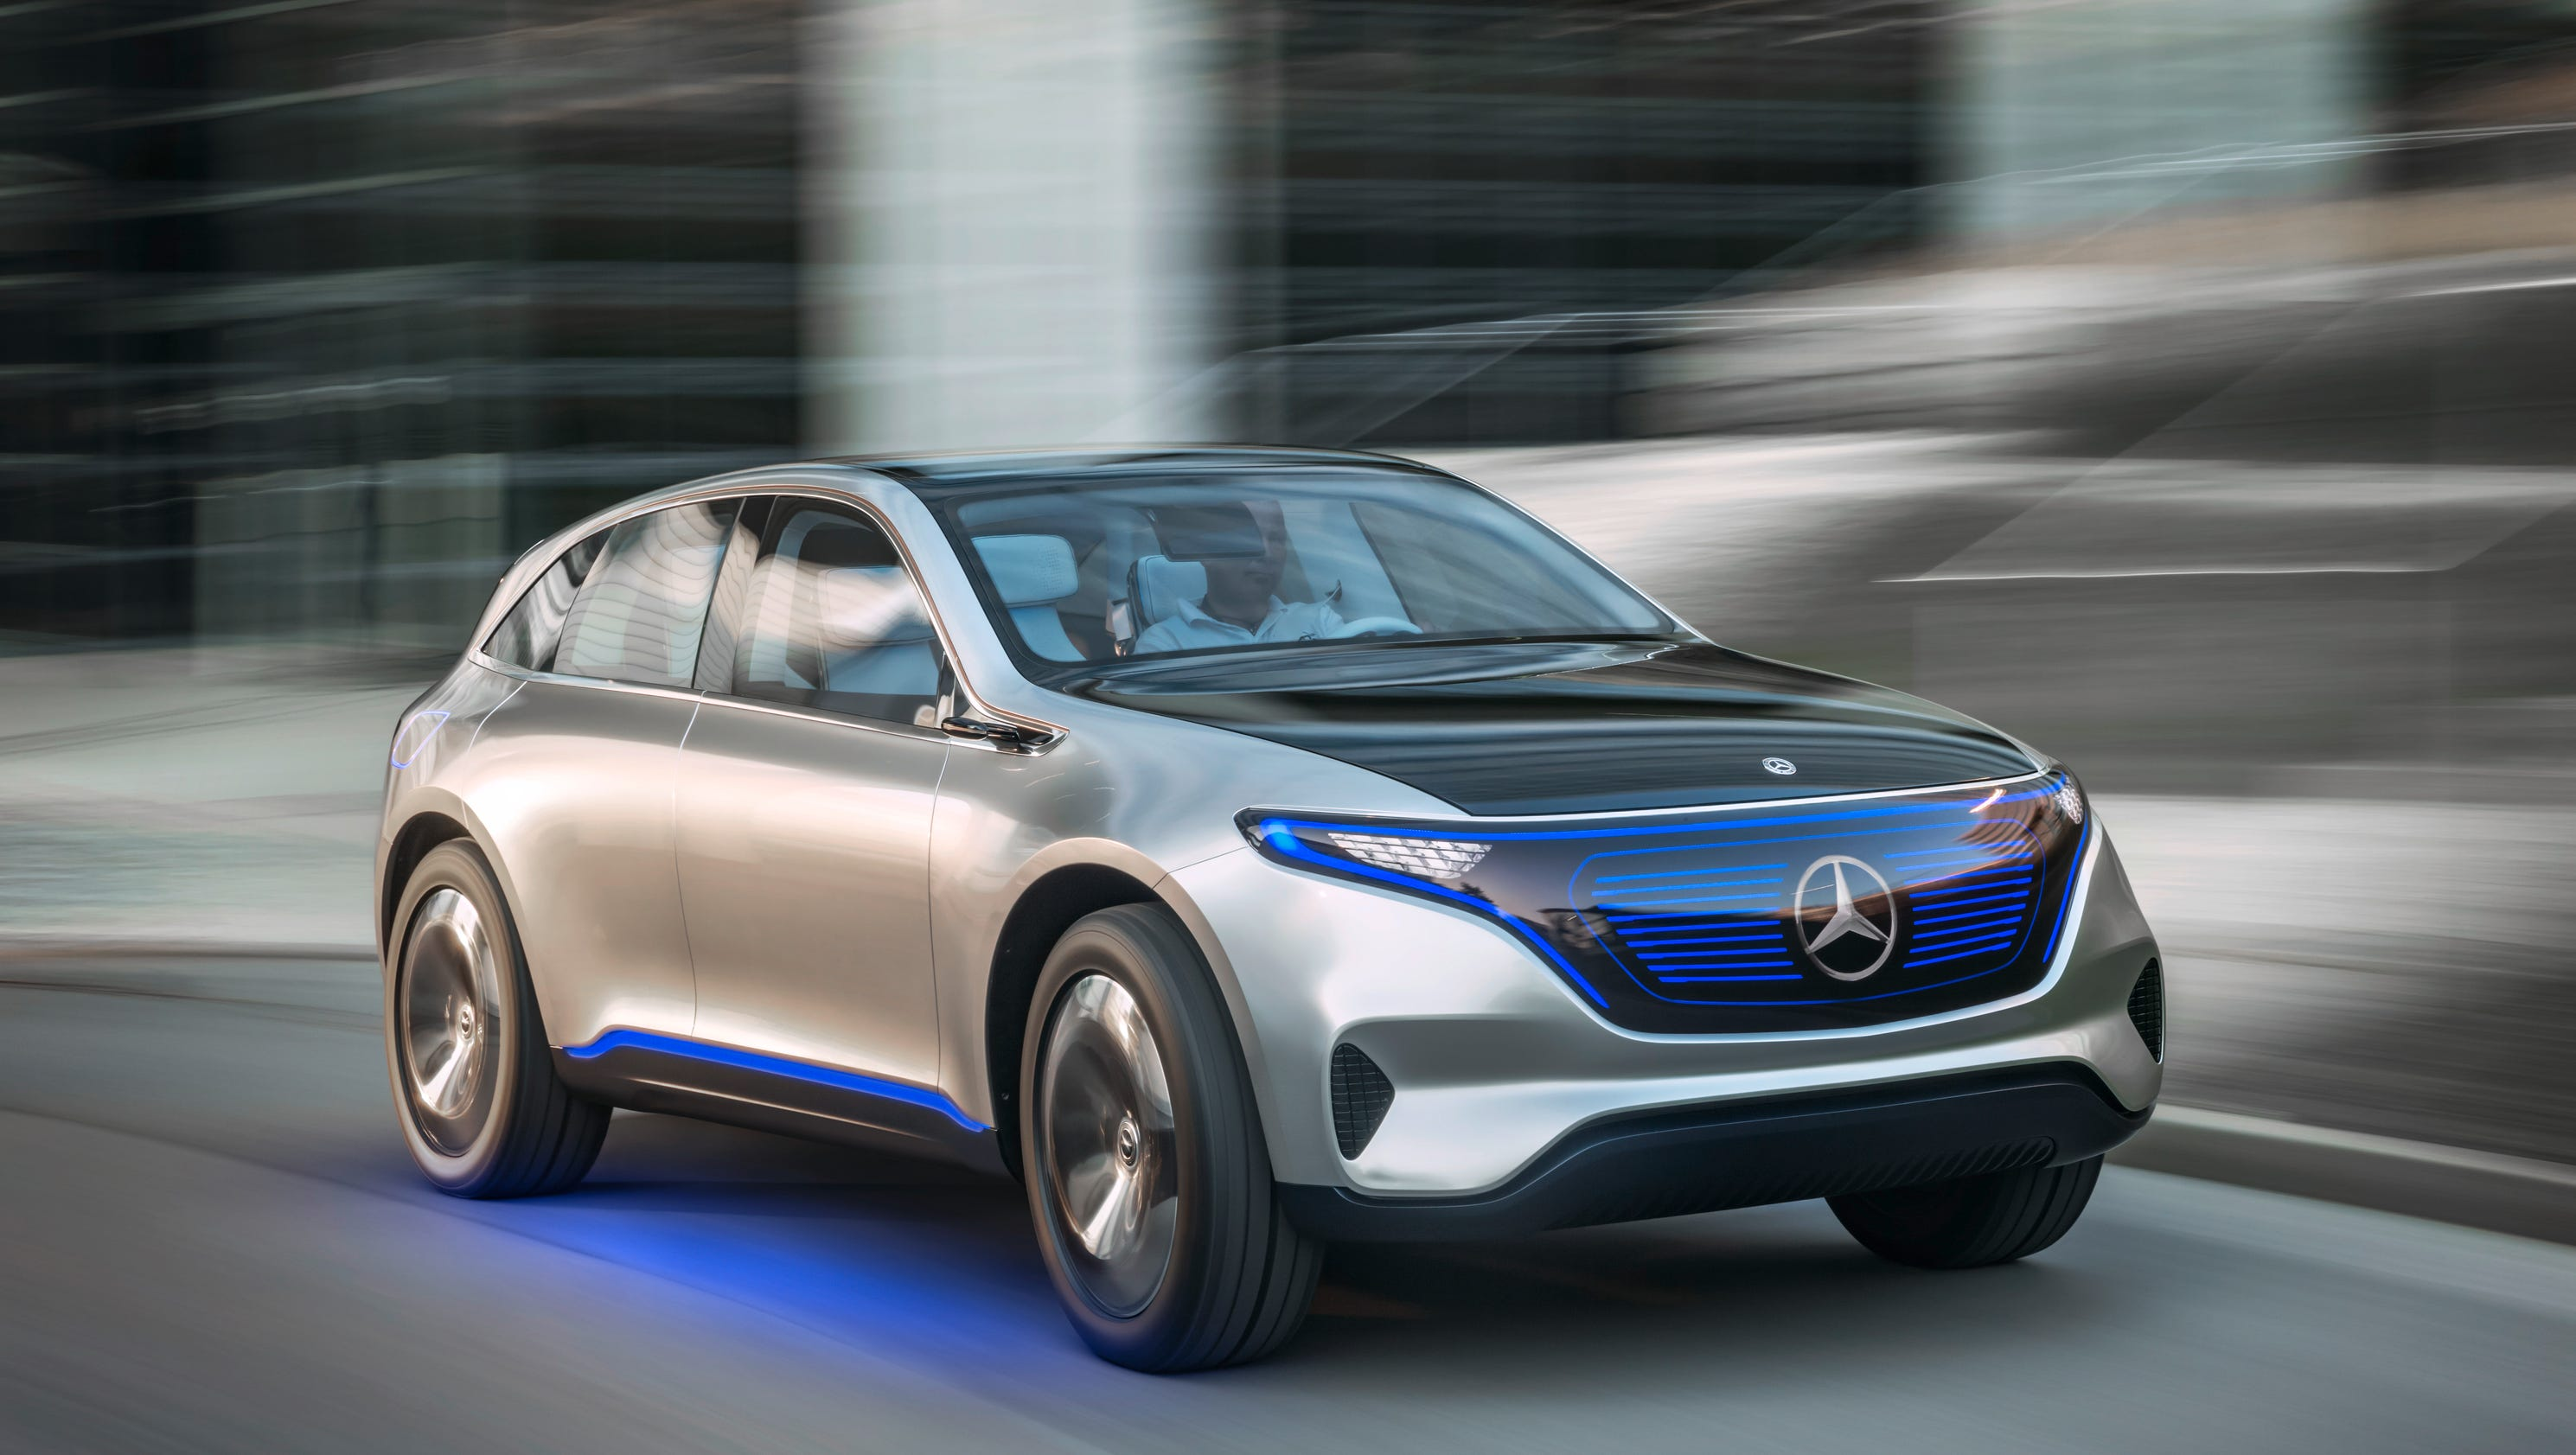 mercedes benz volkswagen reveal electric cars at paris motor show. Cars Review. Best American Auto & Cars Review